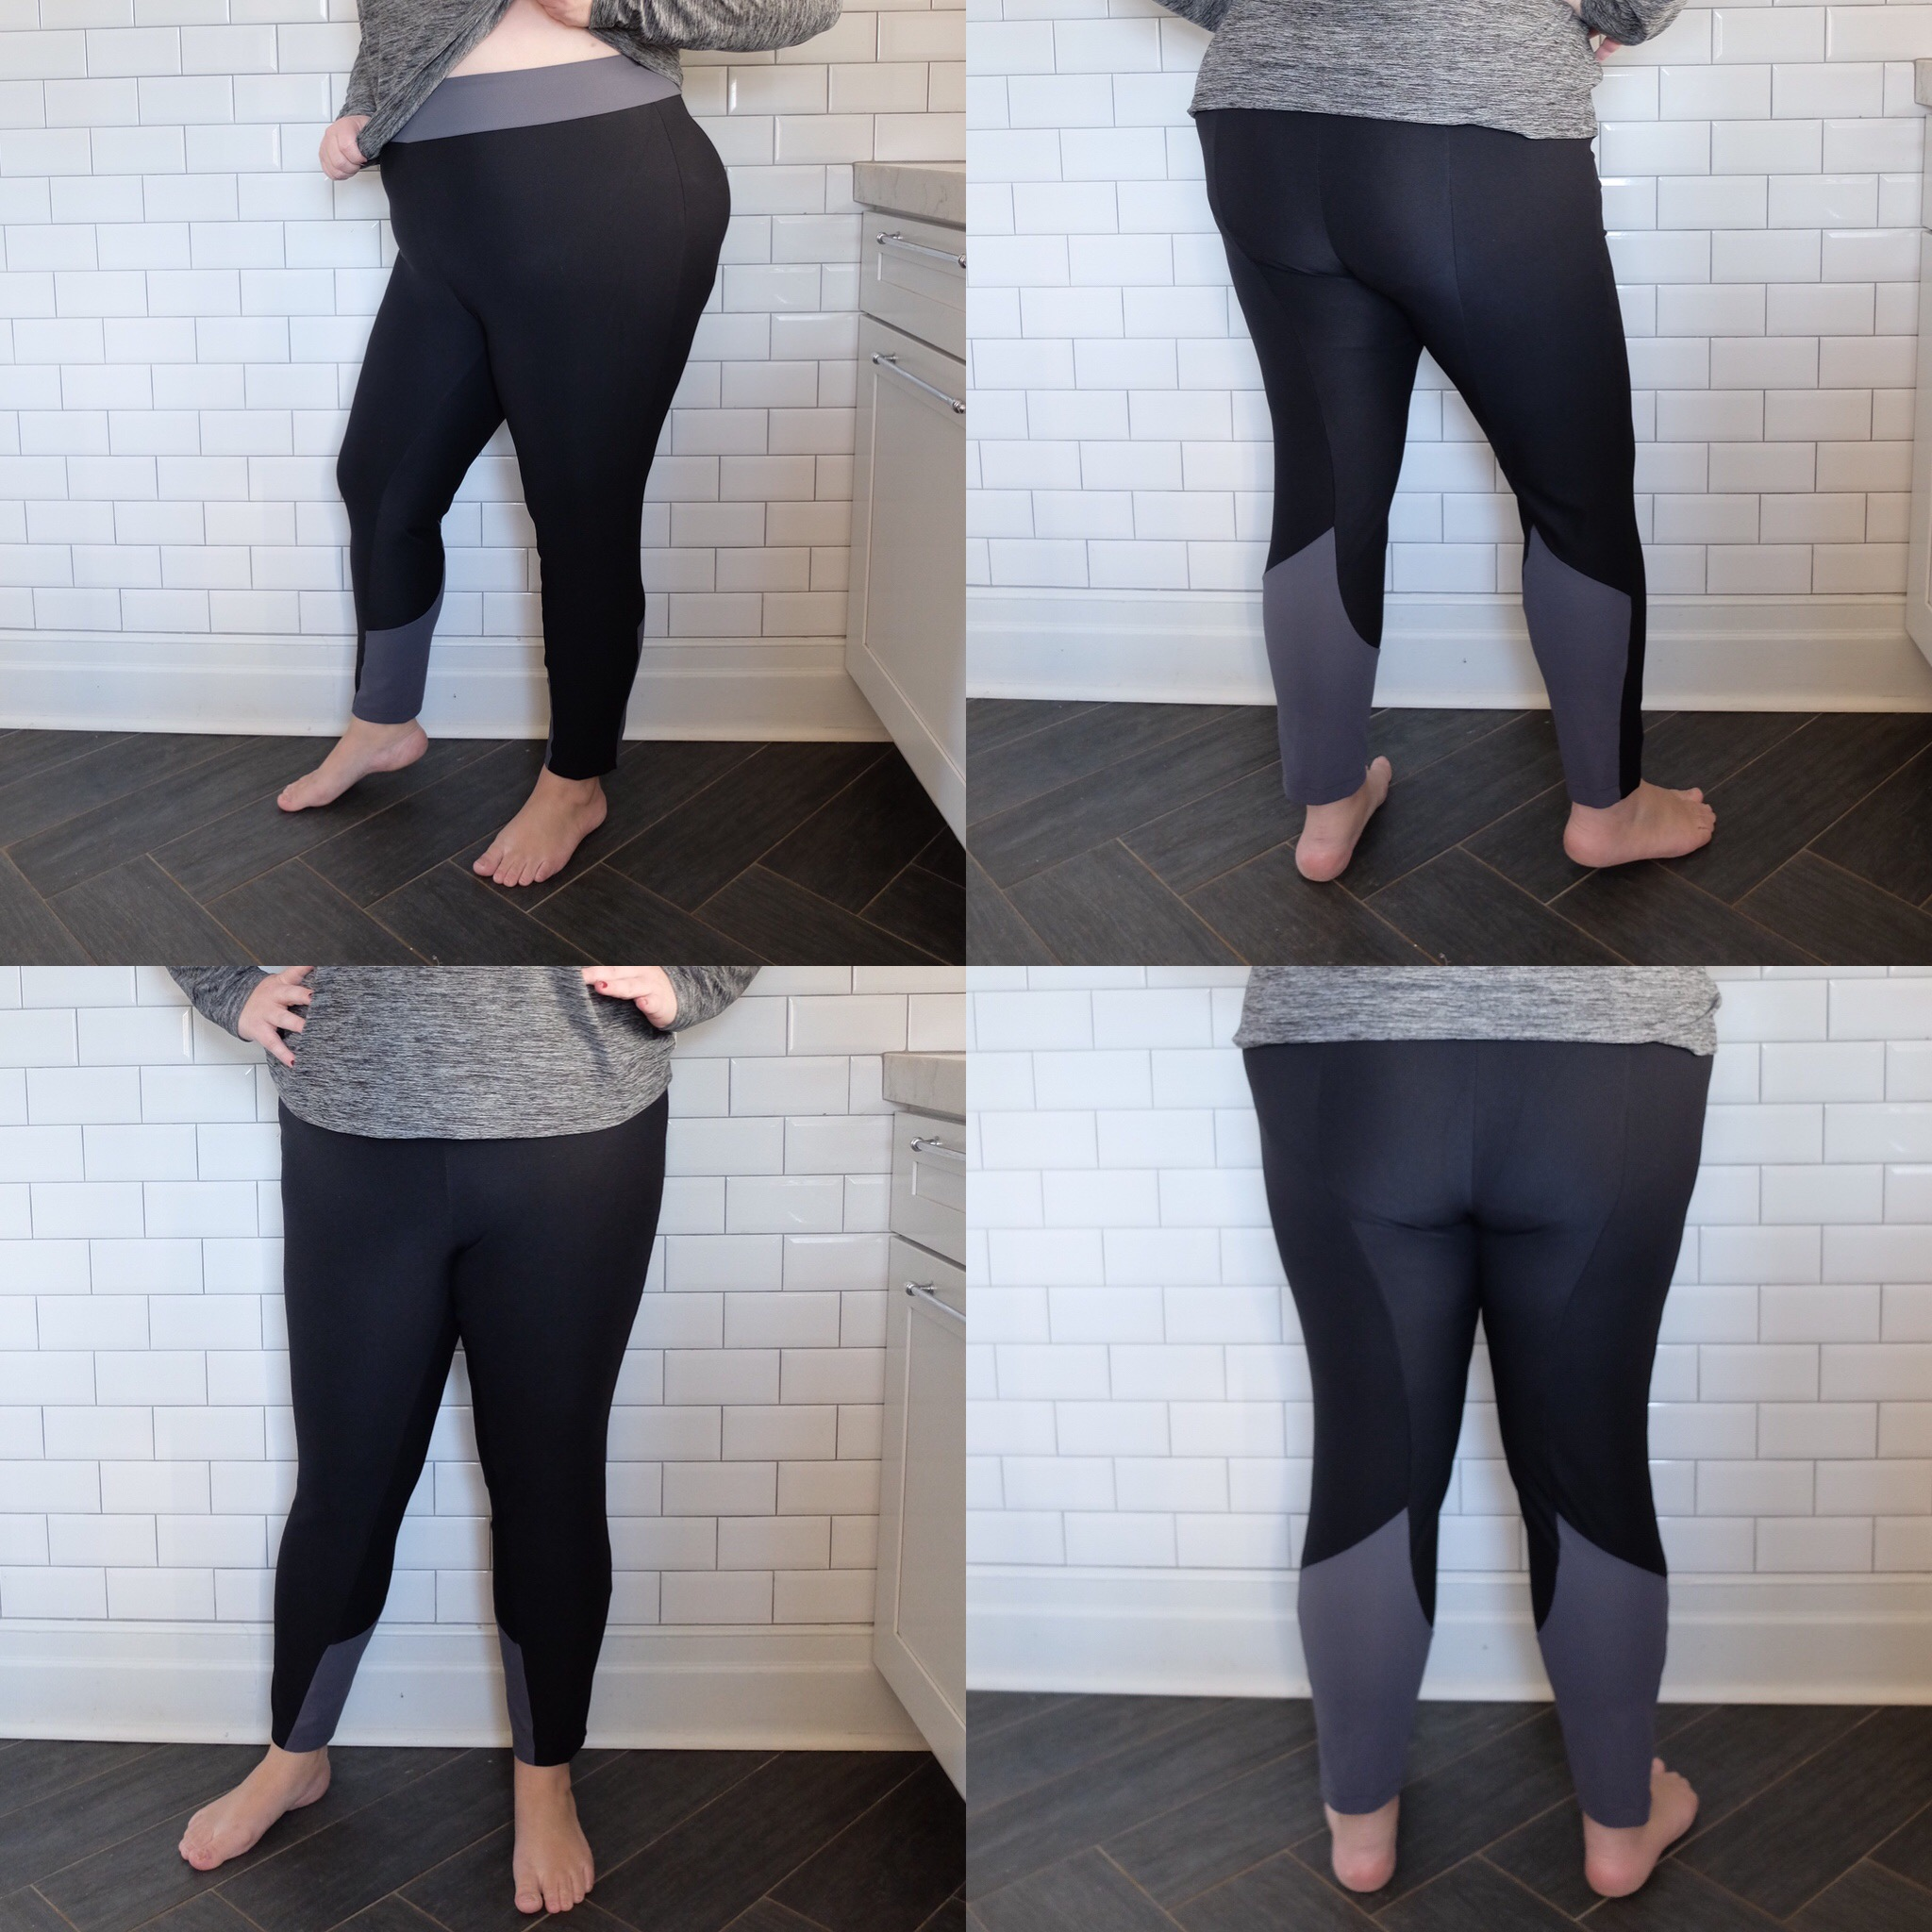 e00c0d1295b46 ... Cora Leggings. Overall, I really like the Jalie drafting — they are one  of my favorite pattern companies and they have a great variety of  activewear and ...